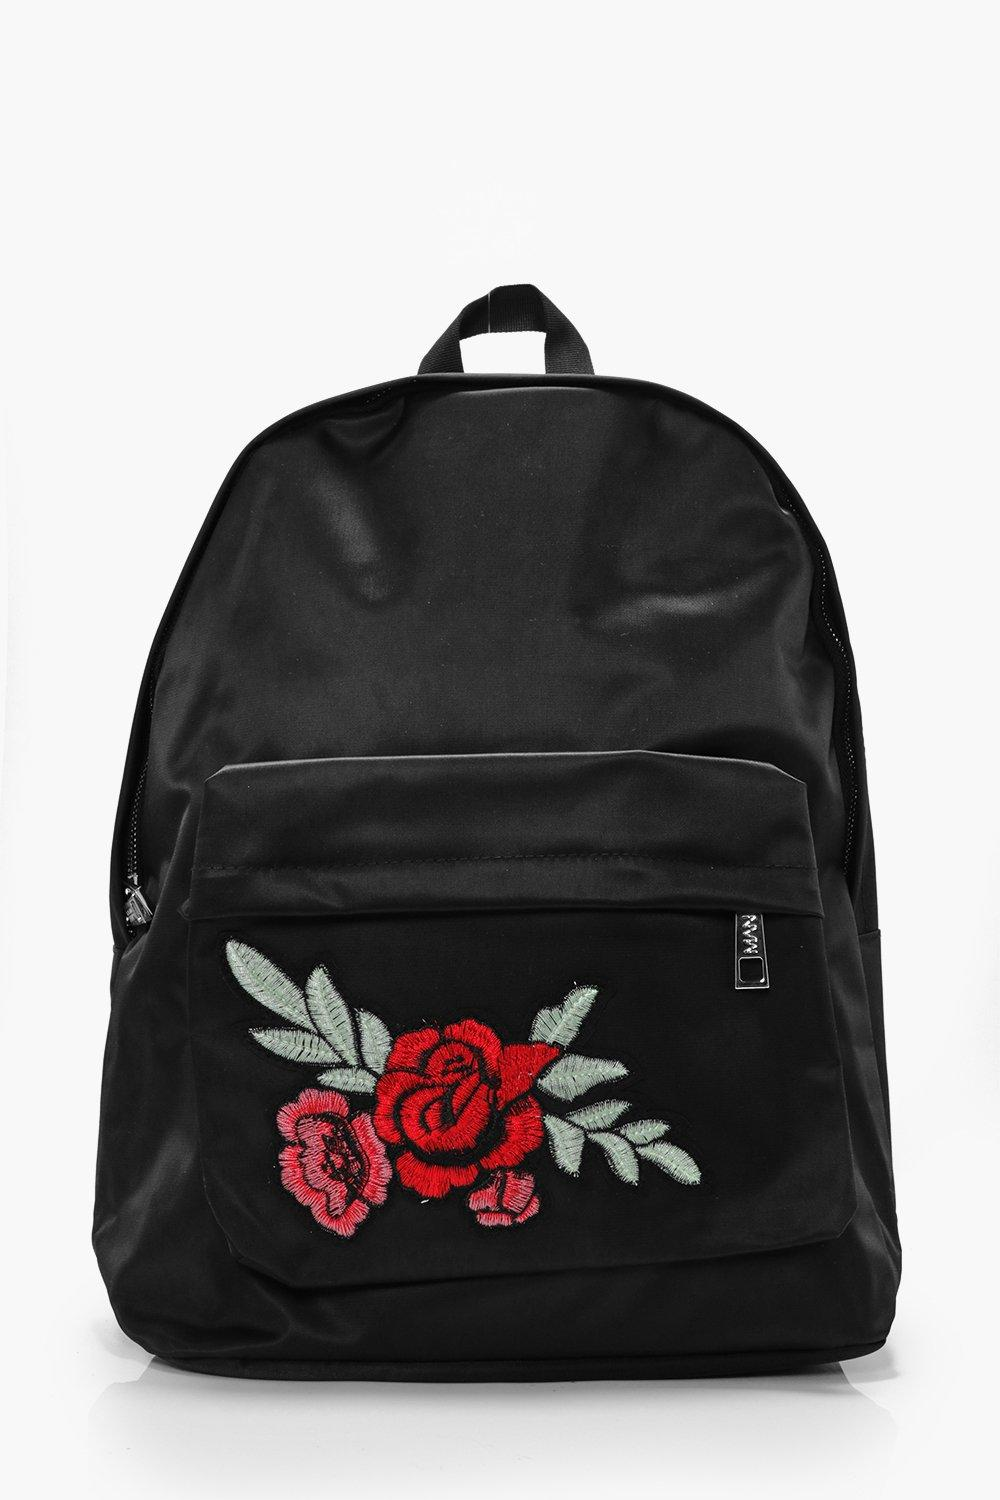 Rose Badge Backpack - black - Black Rose Badge Bac